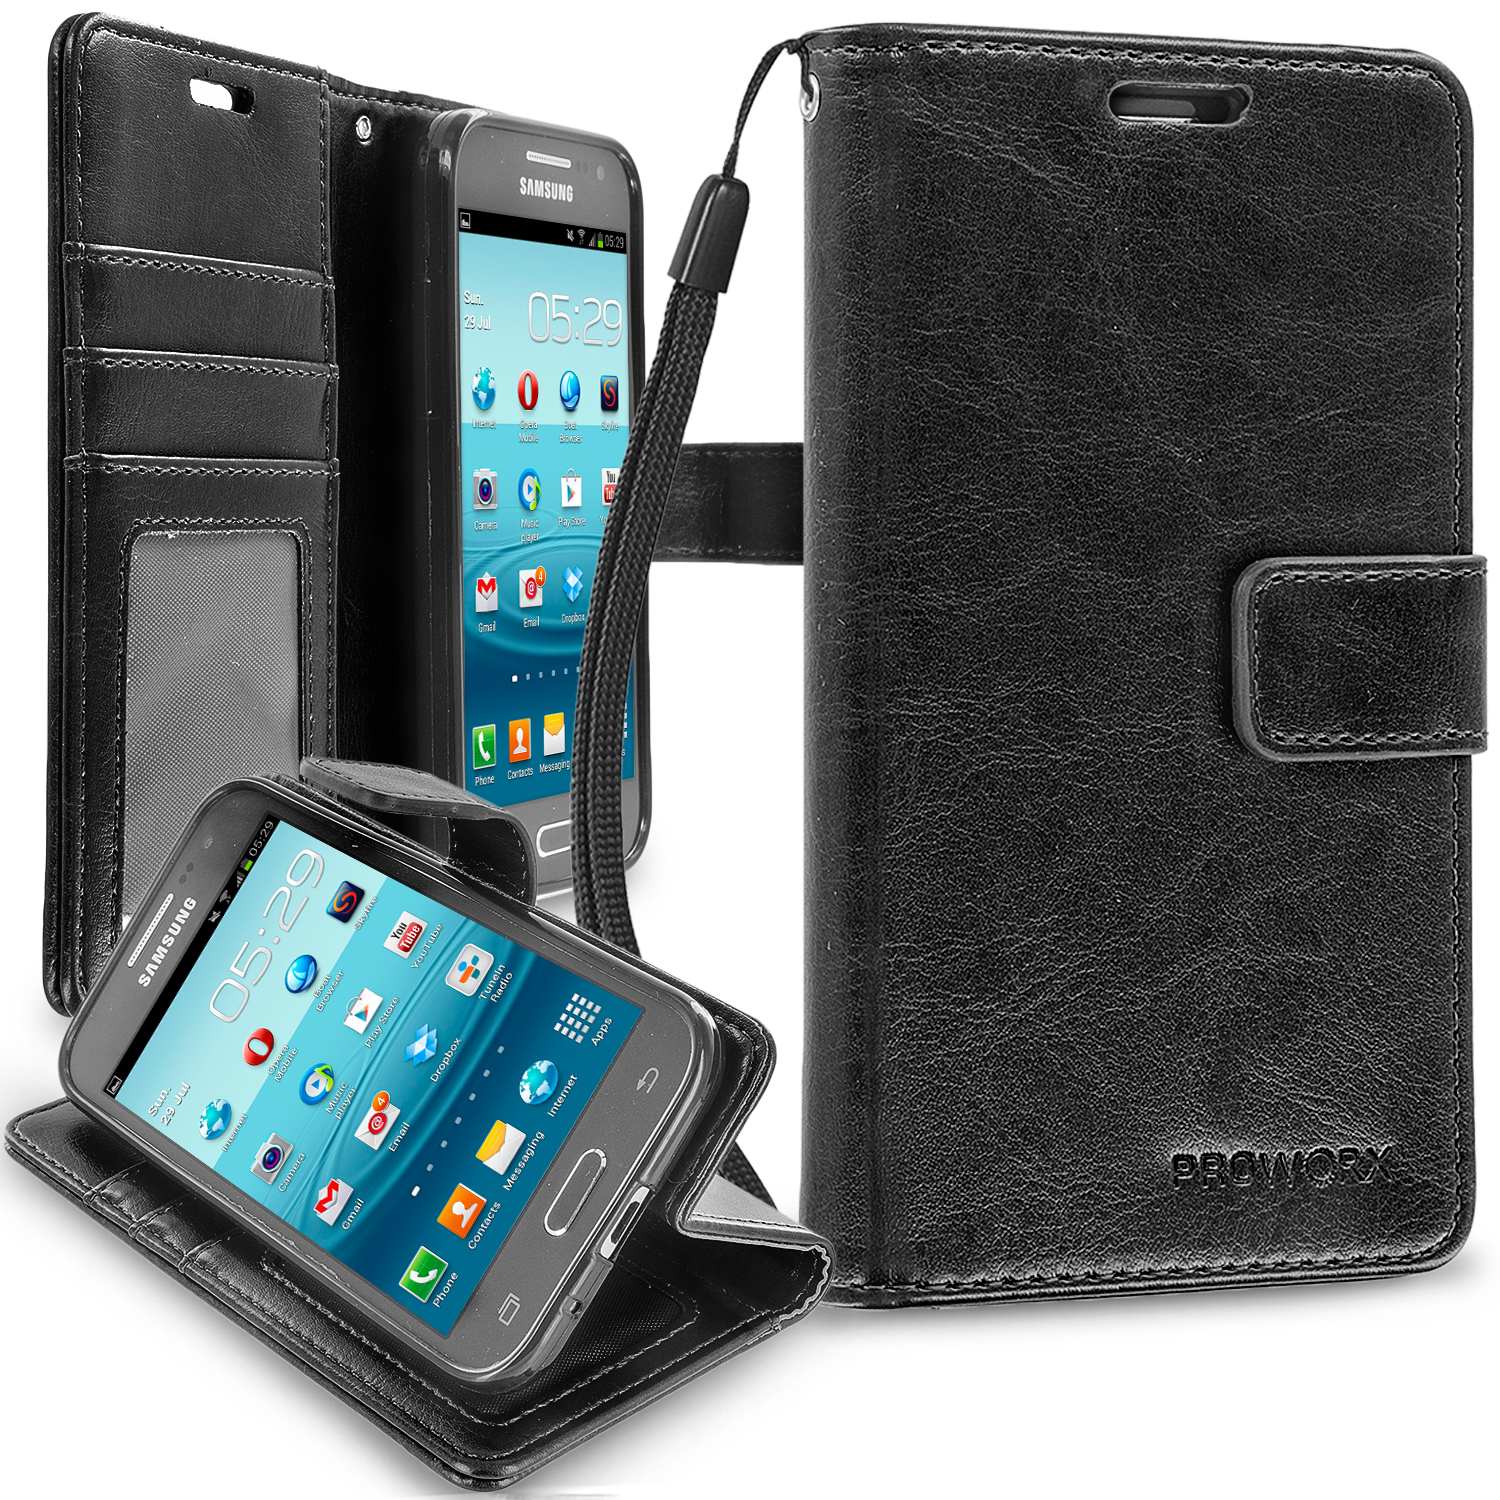 Samsung Galaxy Prevail LTE Core Prime G360P Black ProWorx Wallet Case Luxury PU Leather Case Cover With Card Slots & Stand